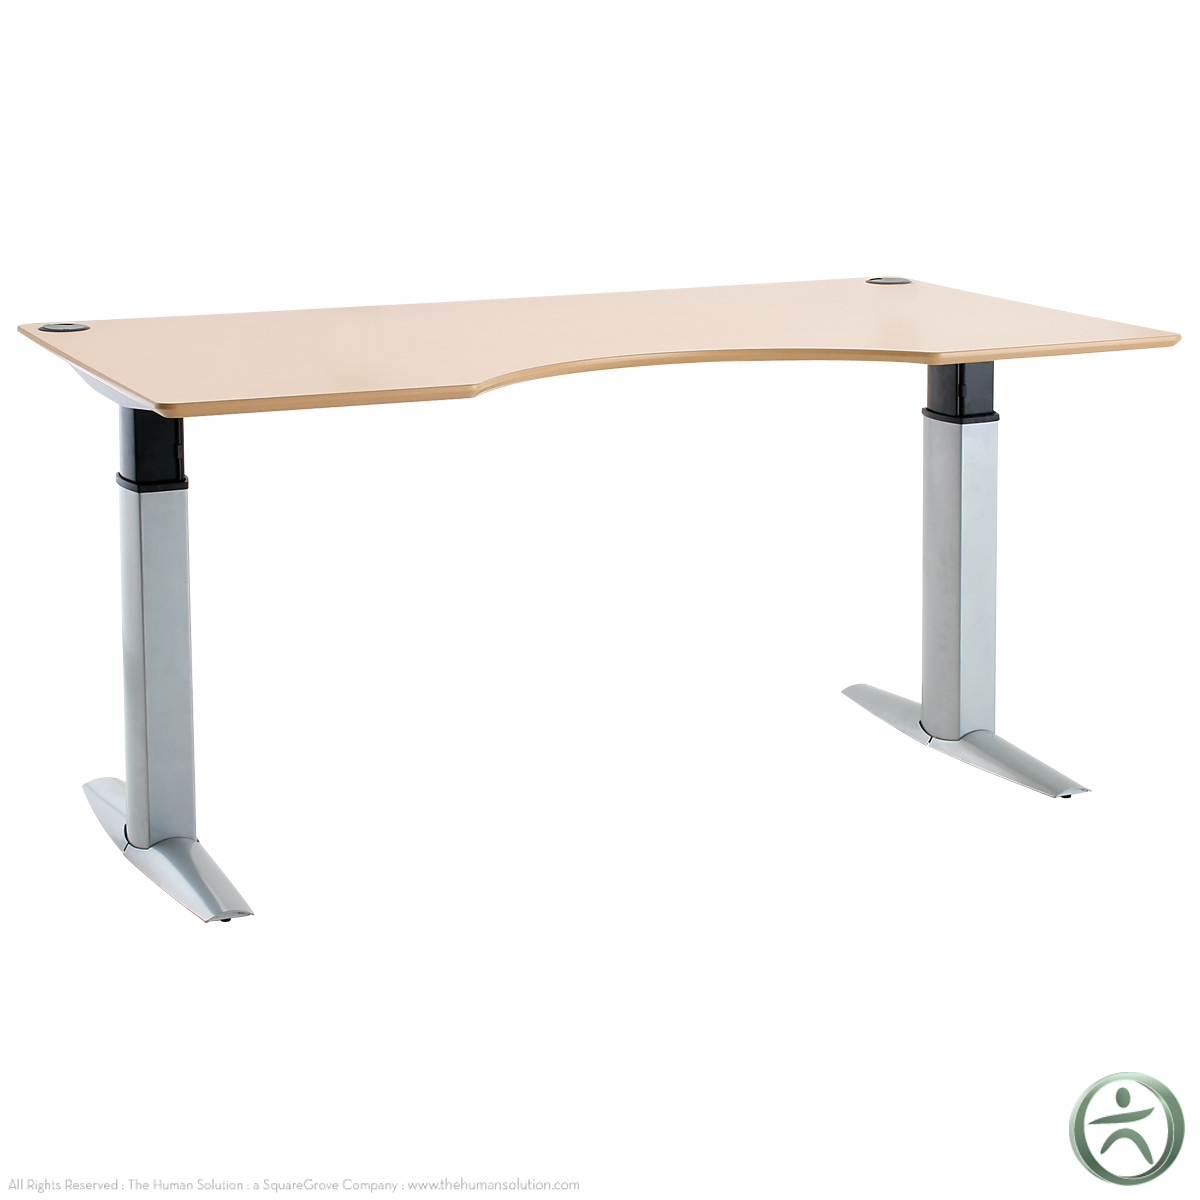 Conset 501 23 laminate electric 26 46 5 sit stand desk for Motorized sit stand desk